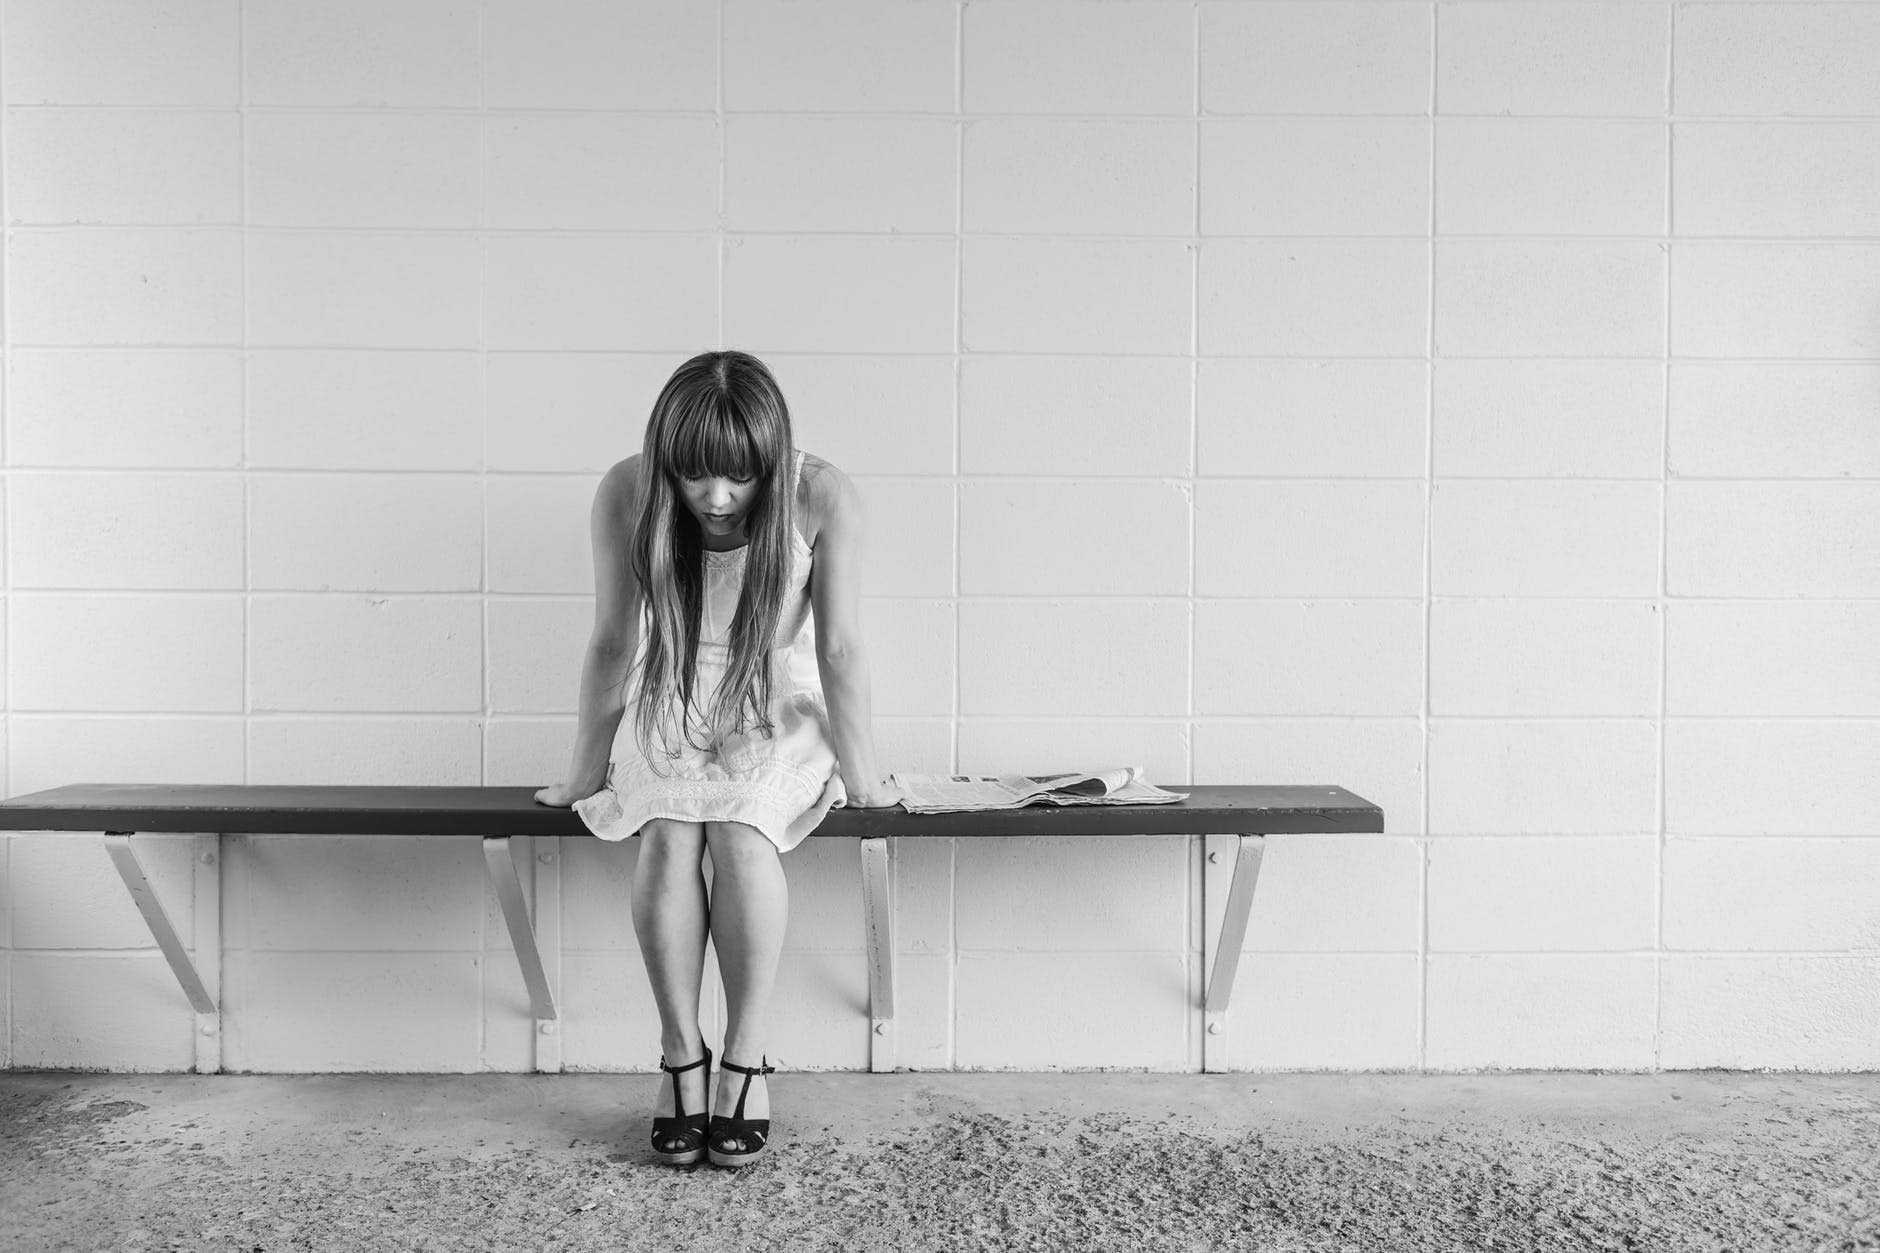 black and white young woman in dress on bench illustrates long terms psychological and physical effects of drug abuse